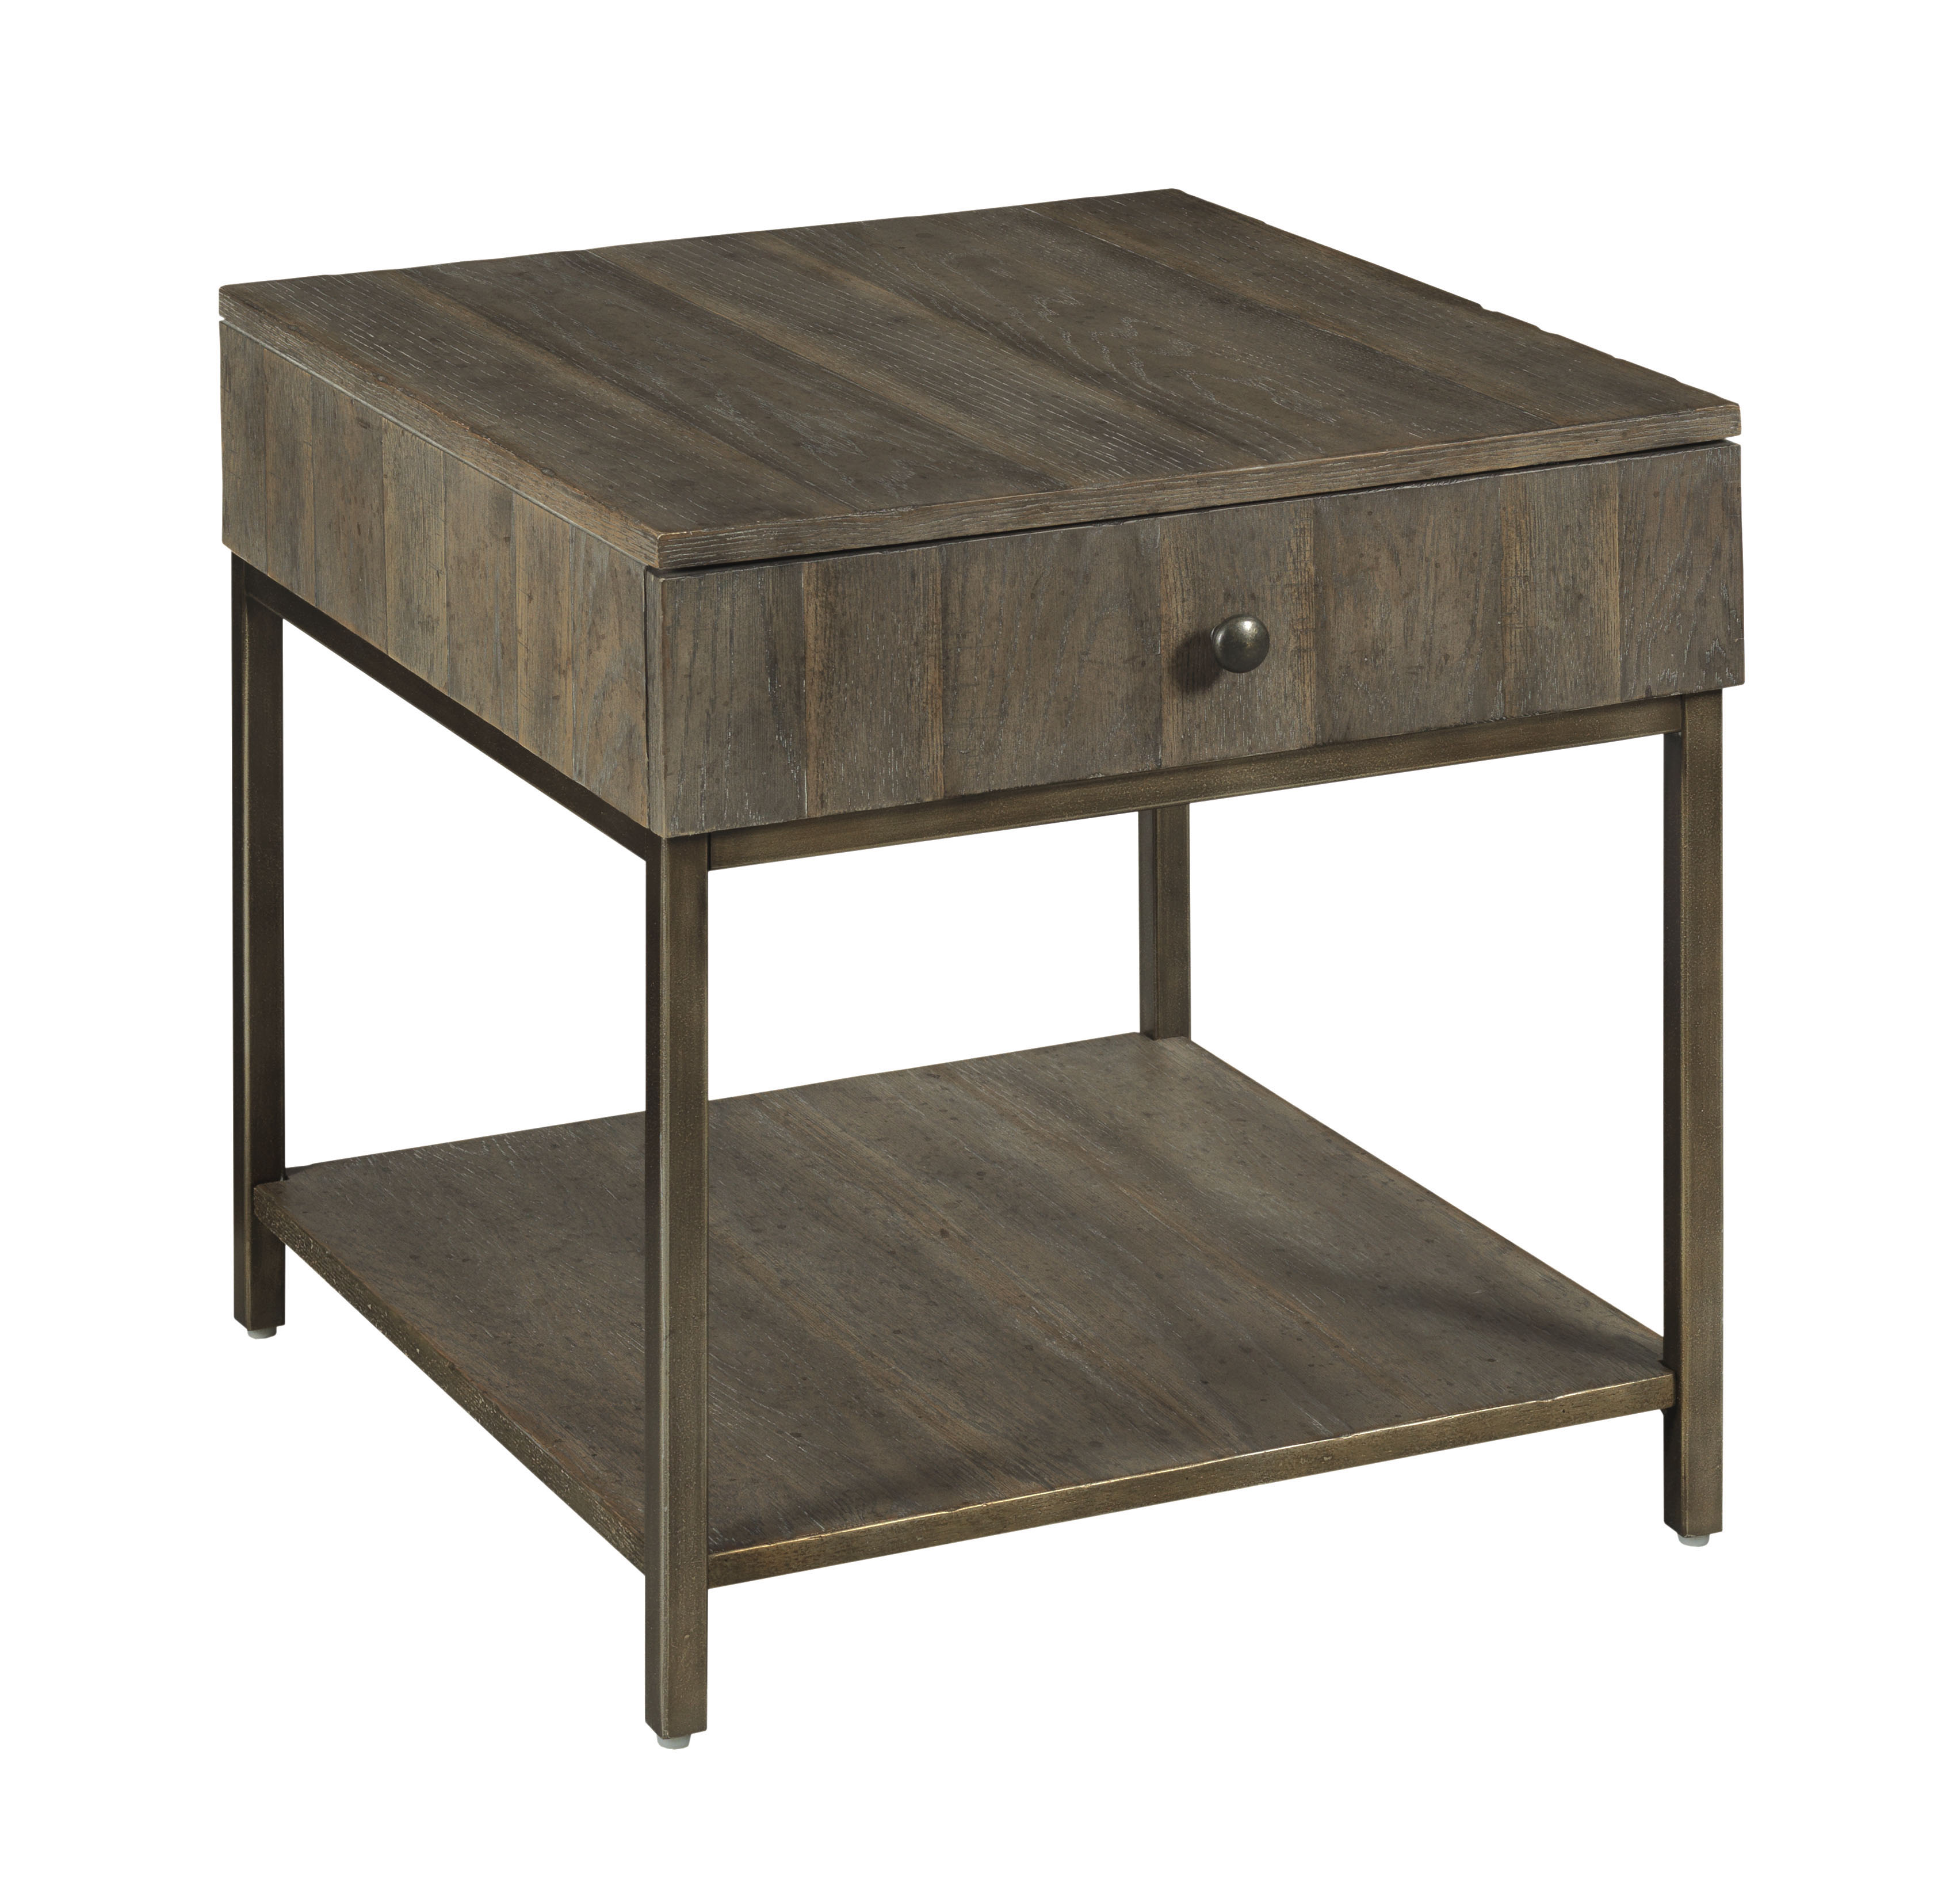 Emporium End Table by Hammary at Esprit Decor Home Furnishings